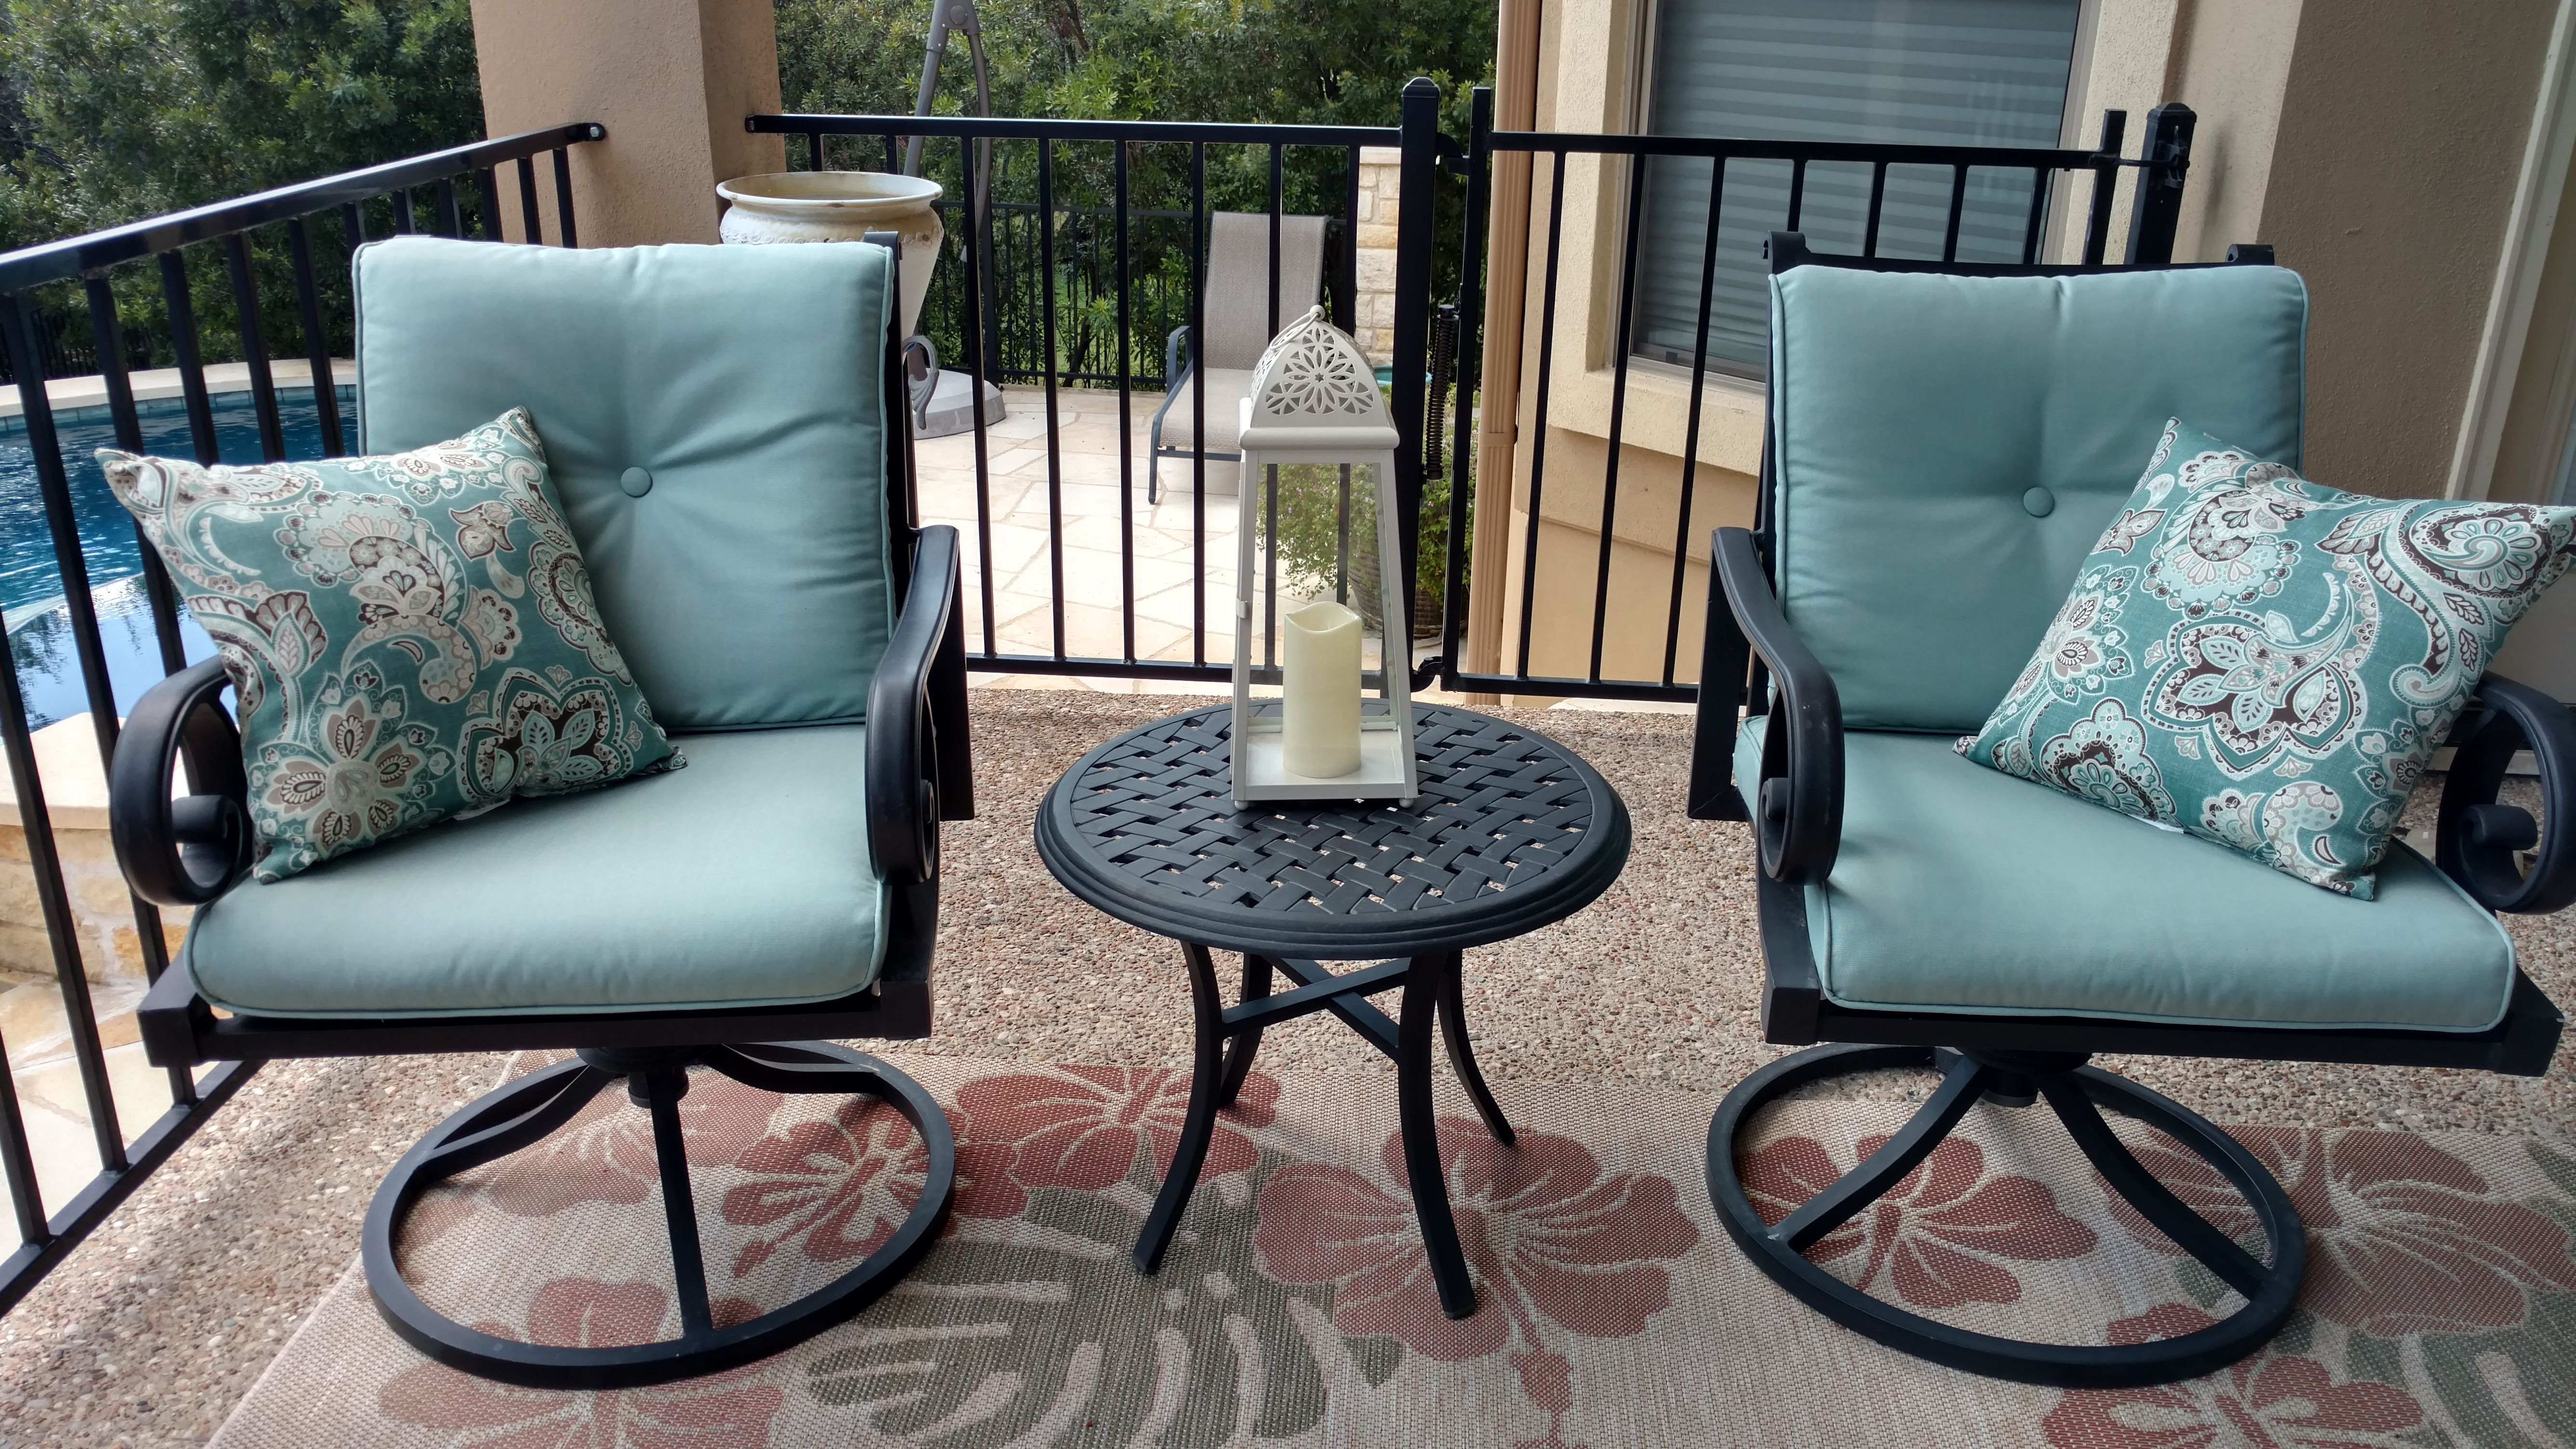 Outdoor Furniture Cushions Covered In Sunbrella Canvas Spa Upholstery Fabric